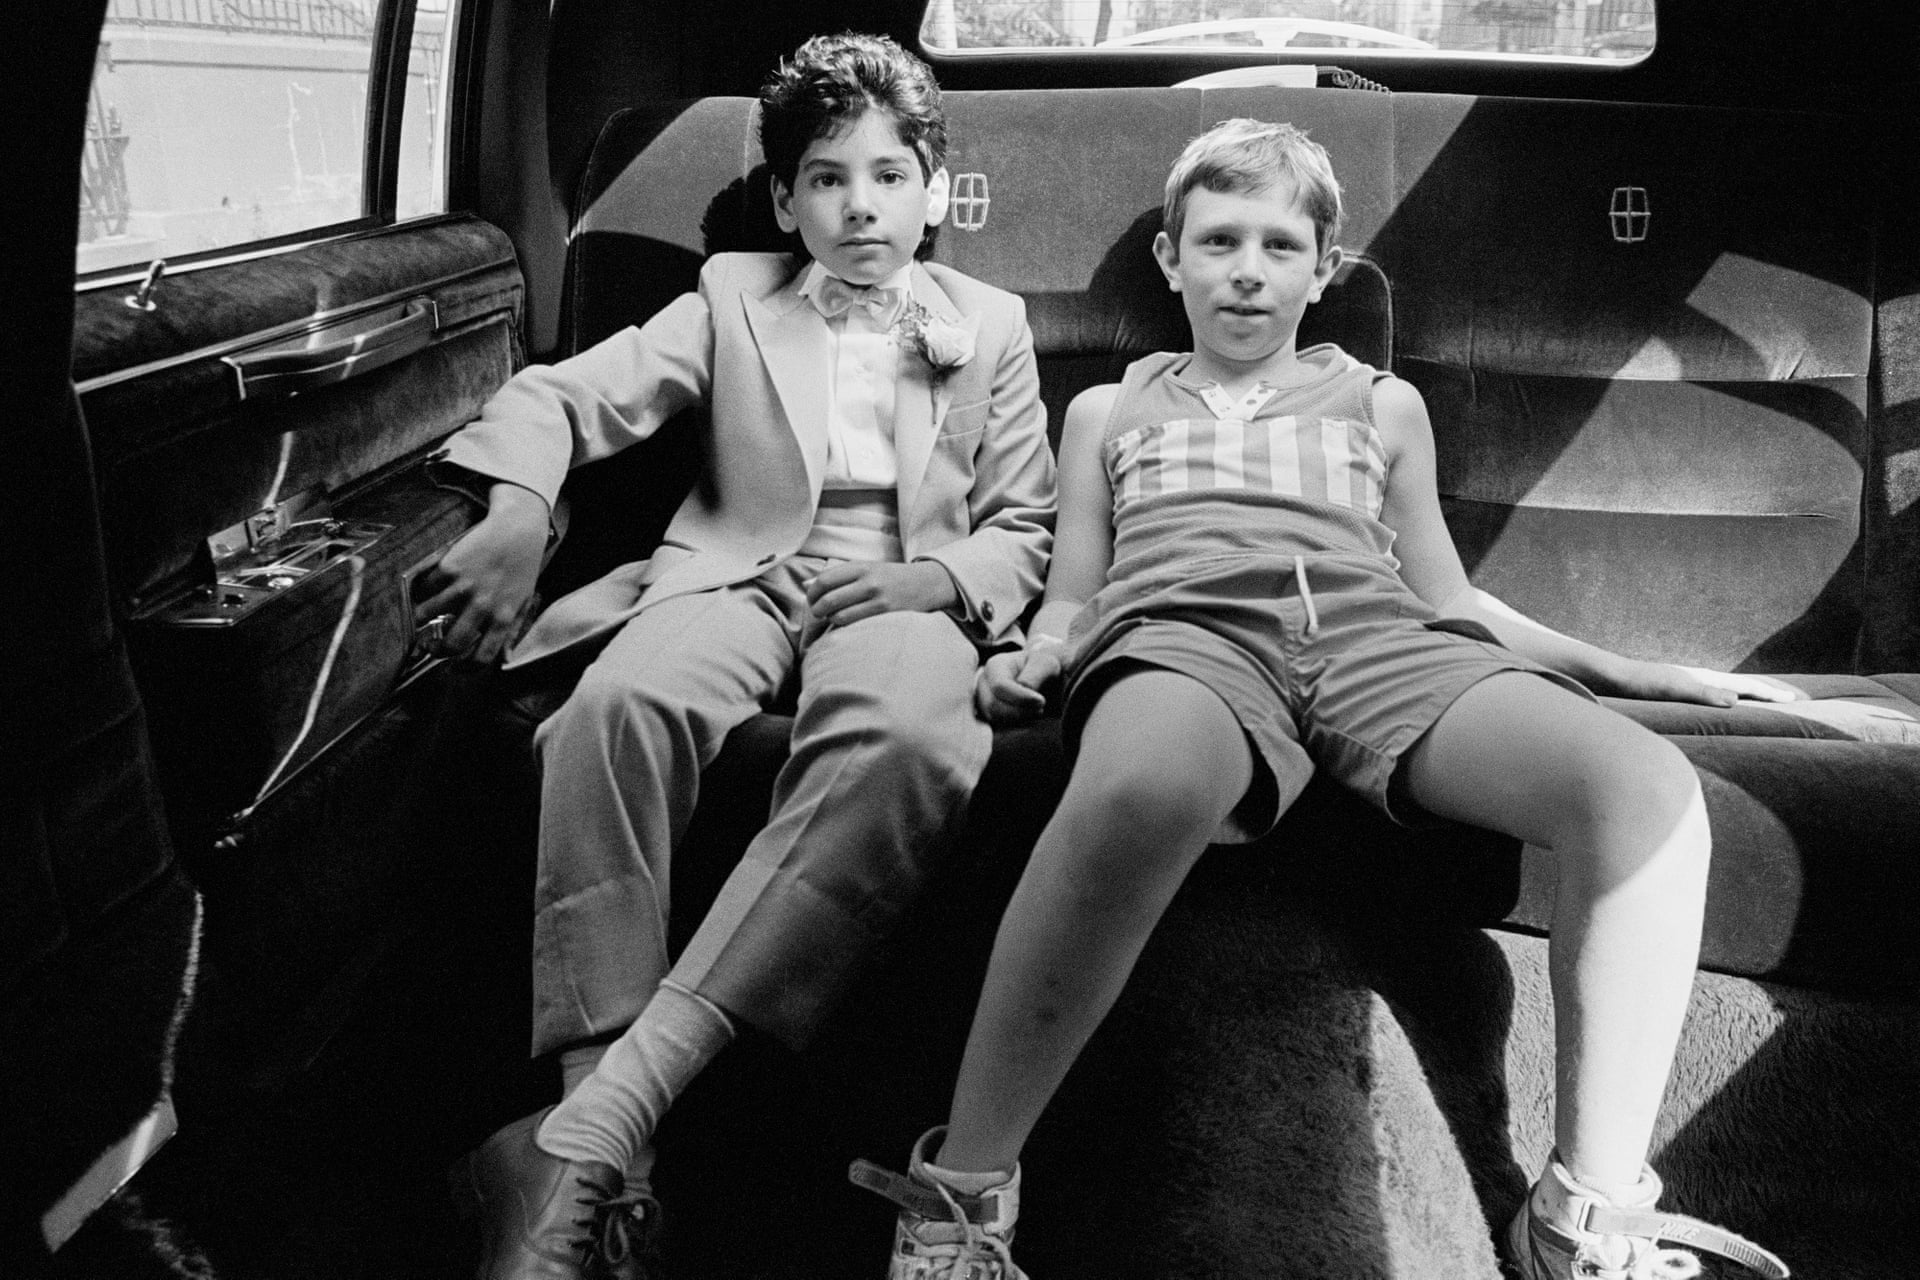 Photographer Kathy Shorr on driving a limo in 80s Brooklyn